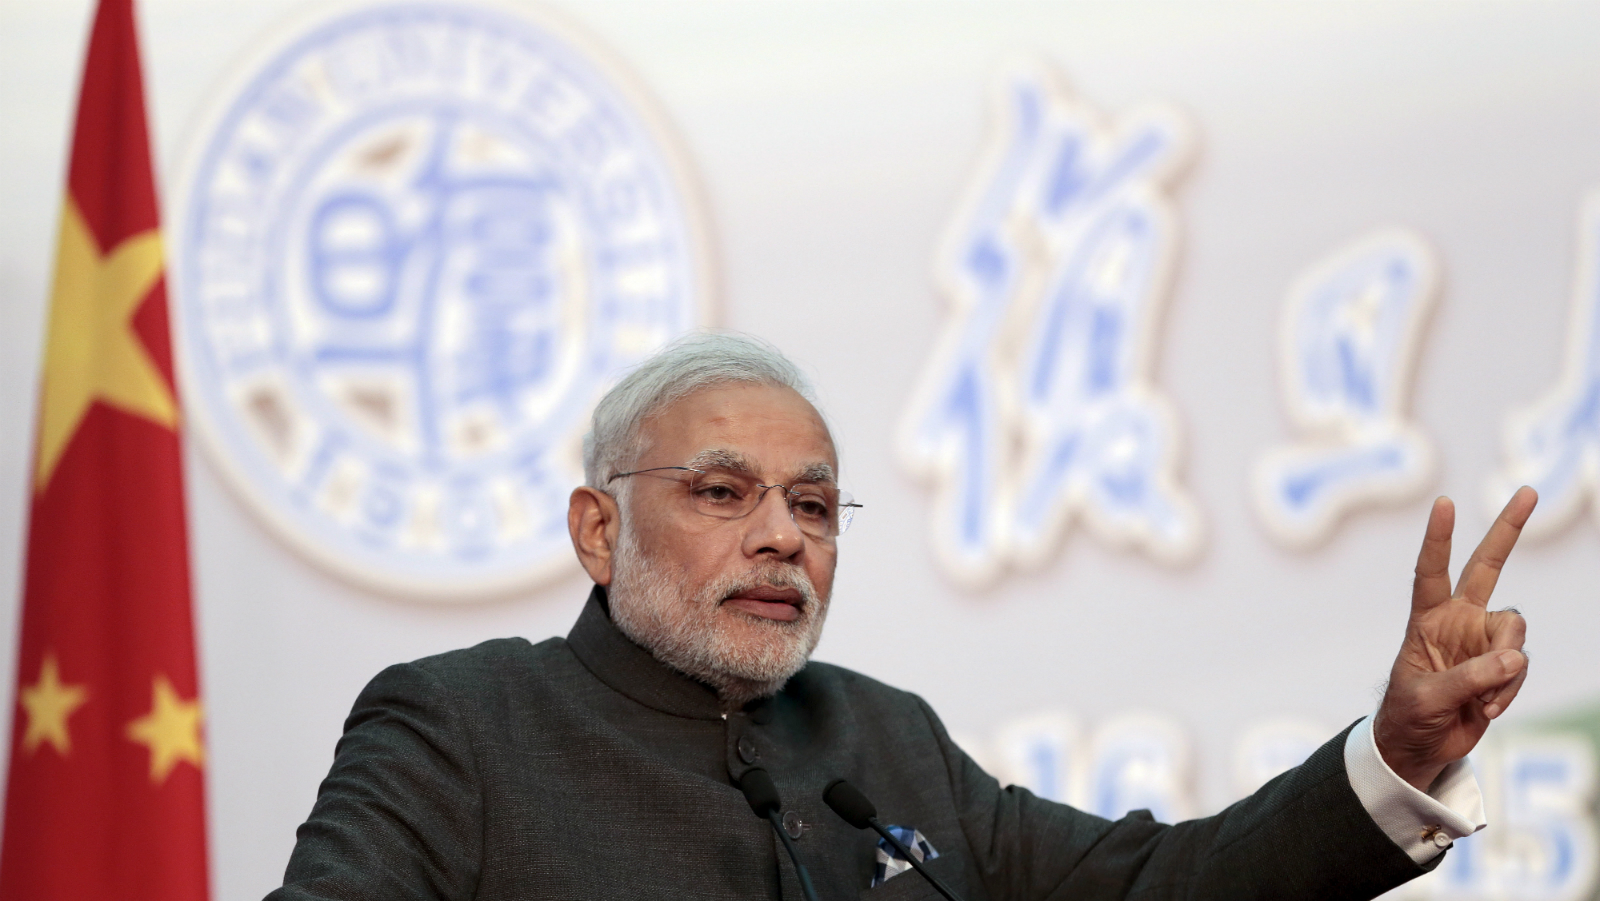 Indian prime minister Narendra Modi gives a speech at Fudan University in Shanghai May 16, 2015.